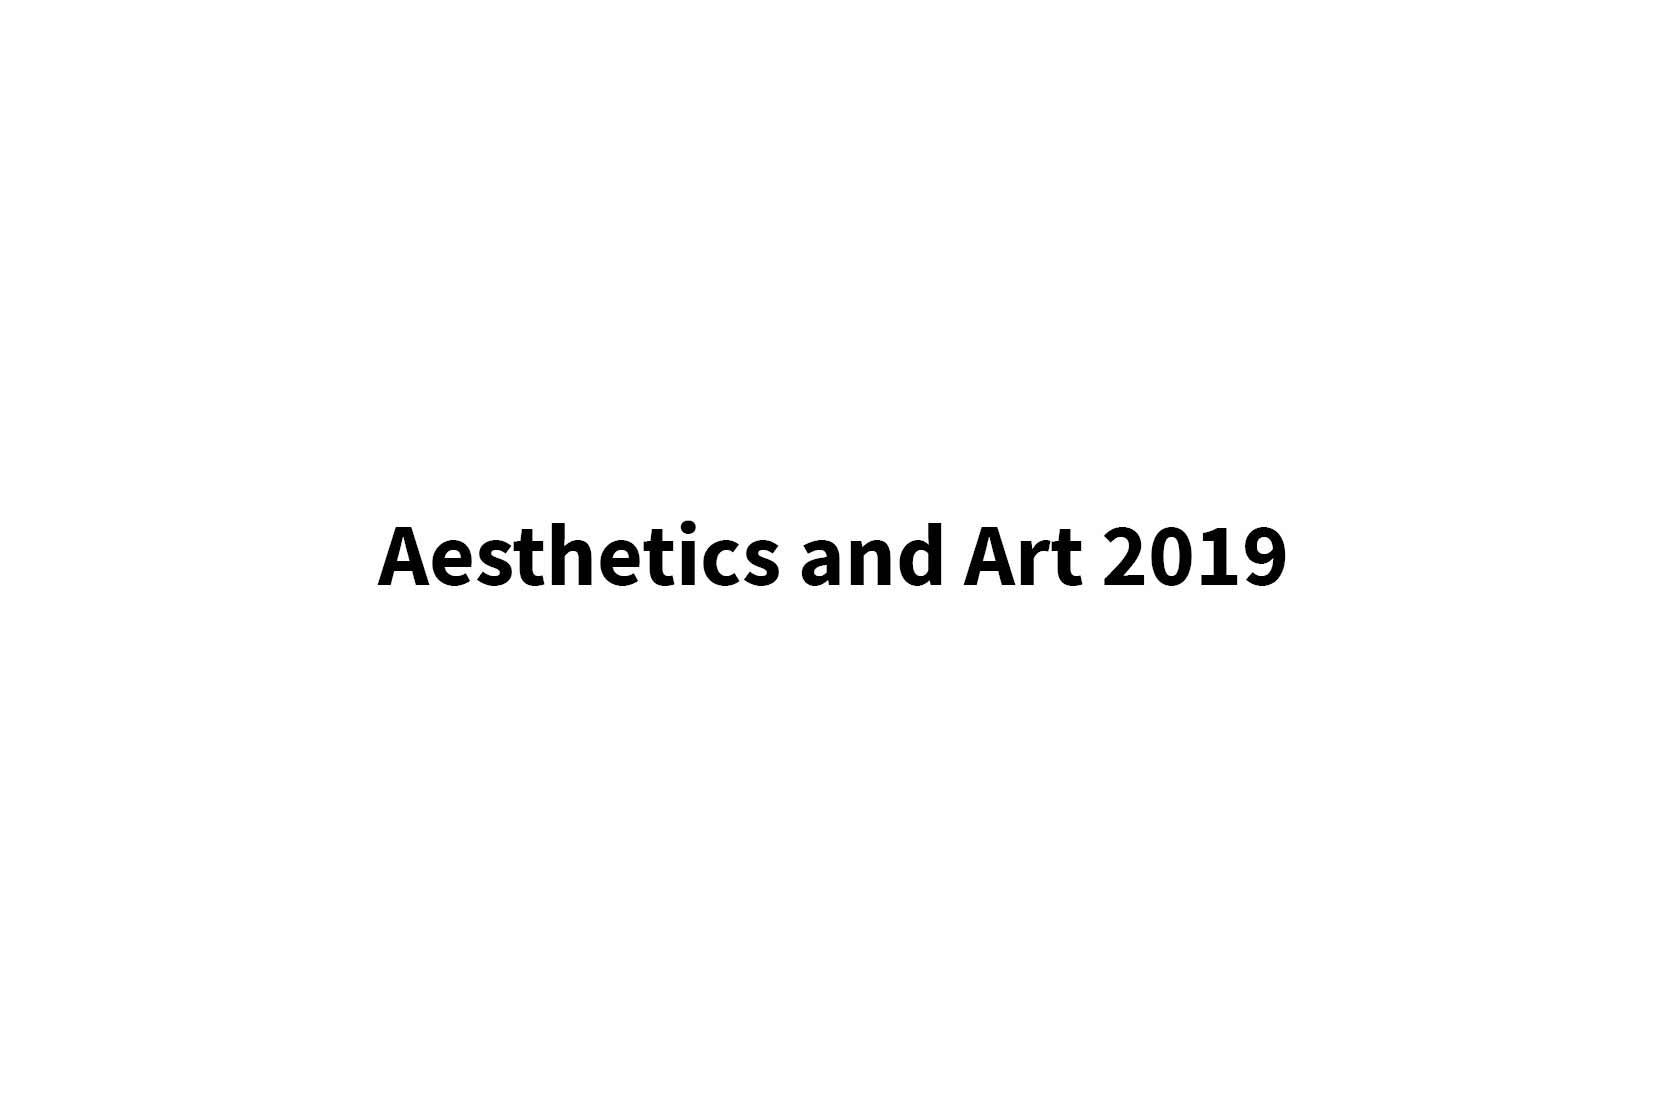 Aesthetics and Art 2019